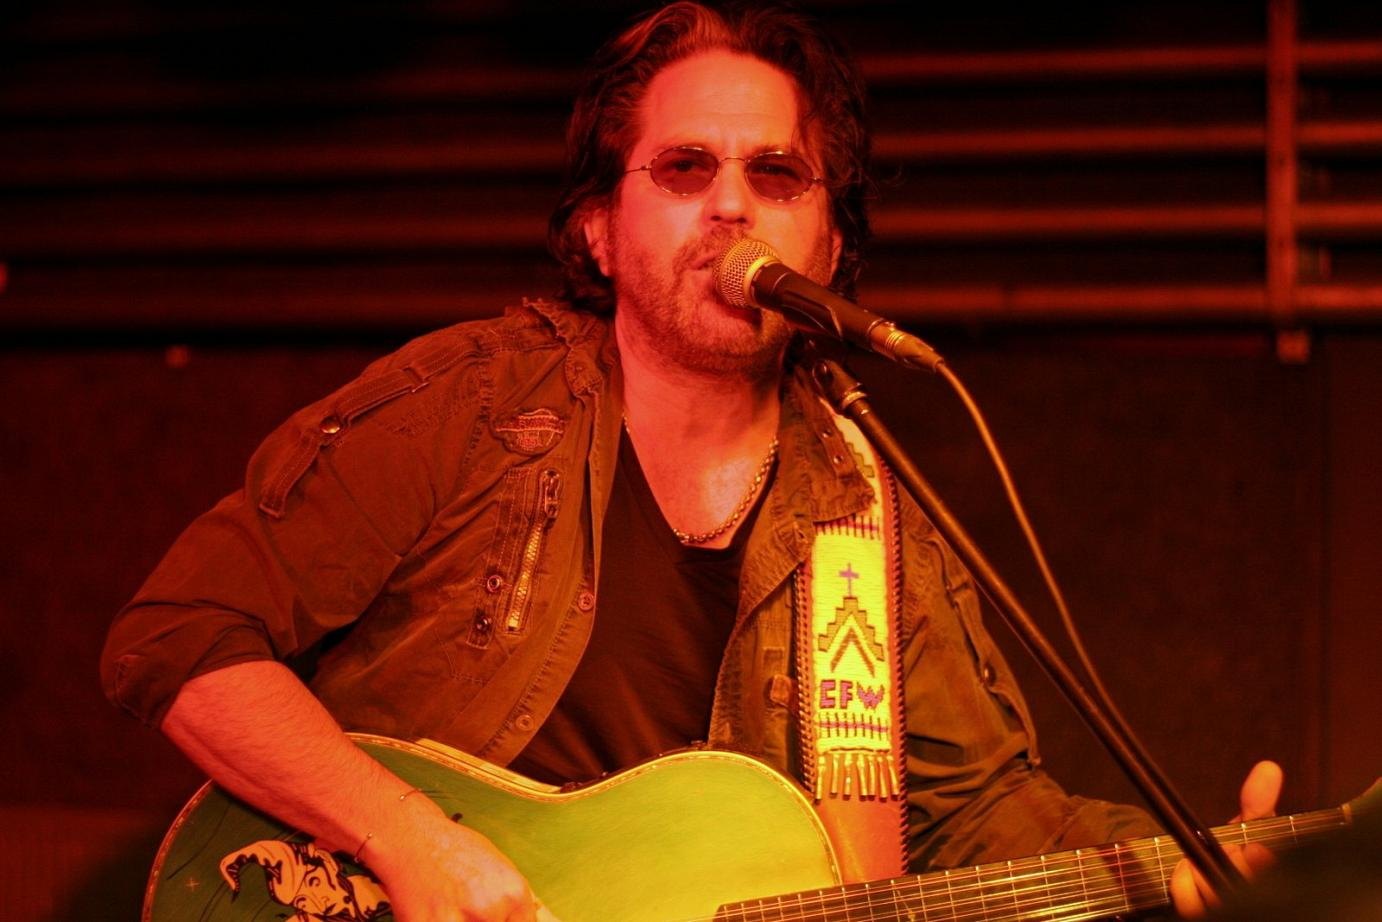 Kip Winger, From The Moon To The Sun To Europe Tour 2012, Underground Köln